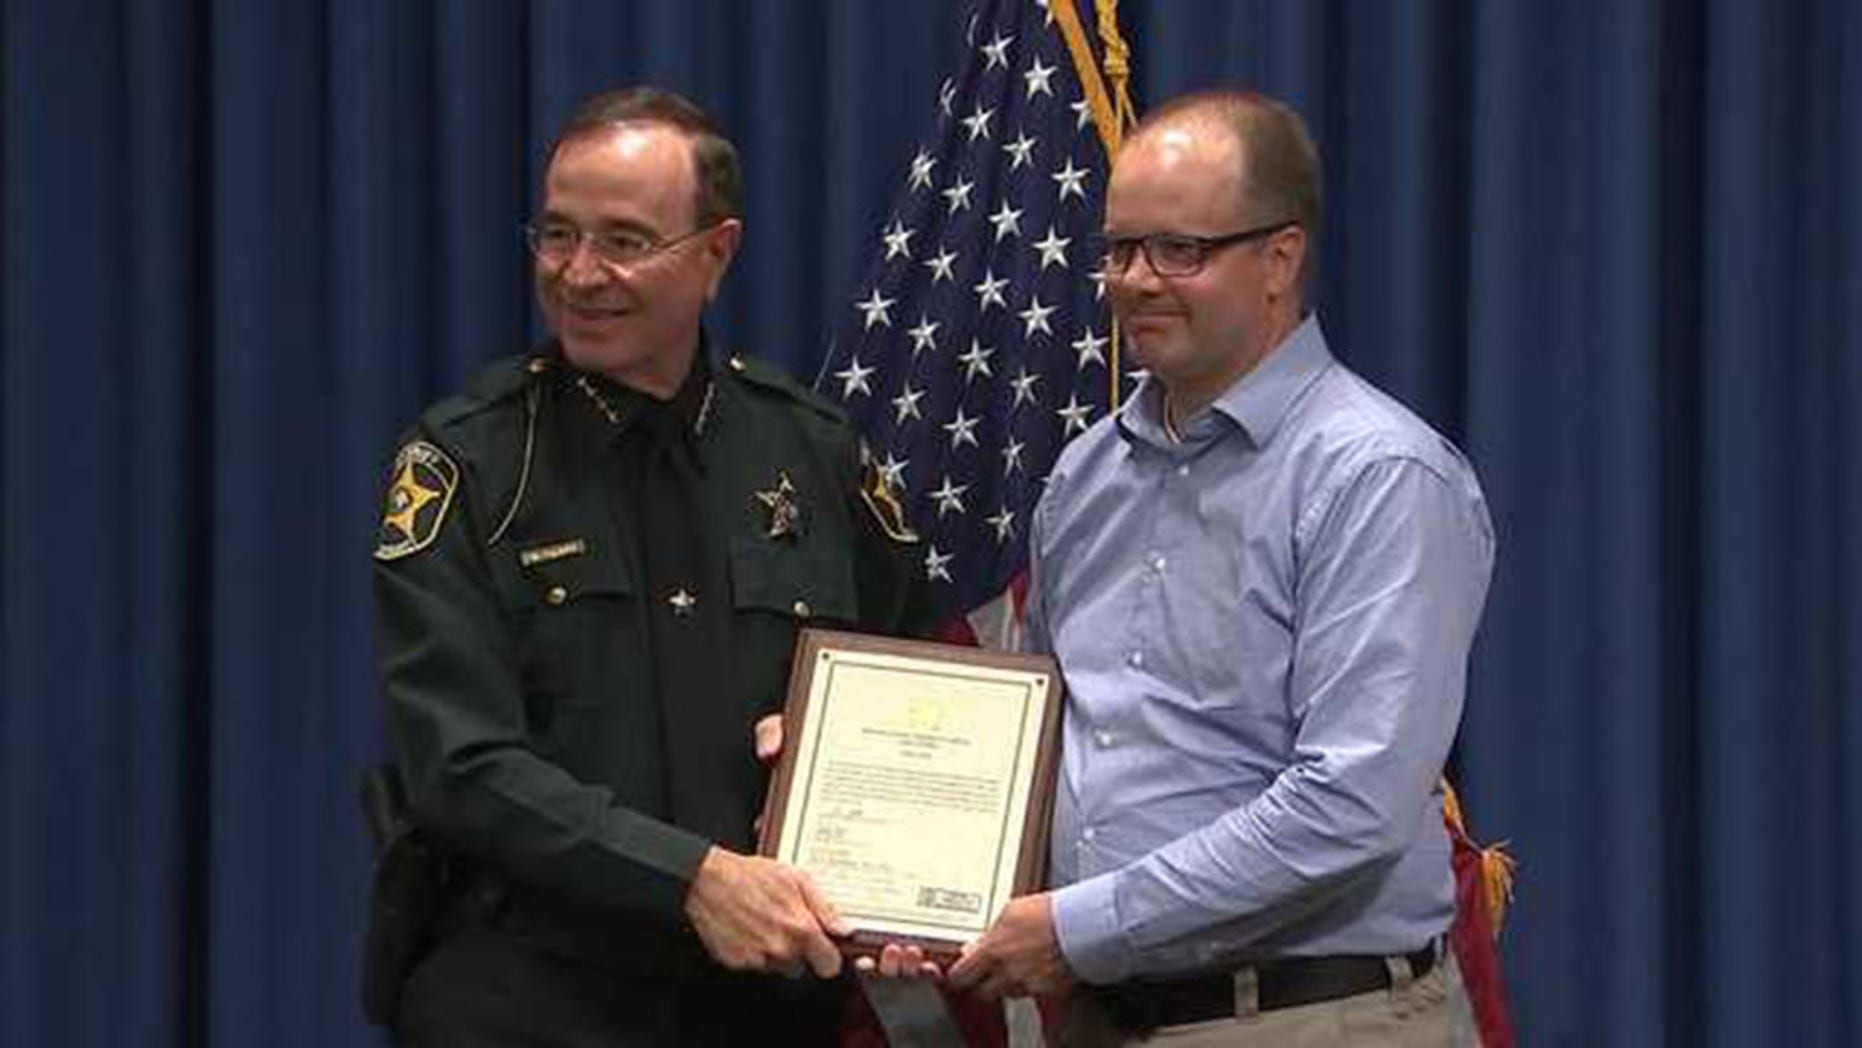 Ryan Petty, right, the father of a Parkland shooting victim Alaina Petty, became an honorary armed school guardian Thursday in Polk County.